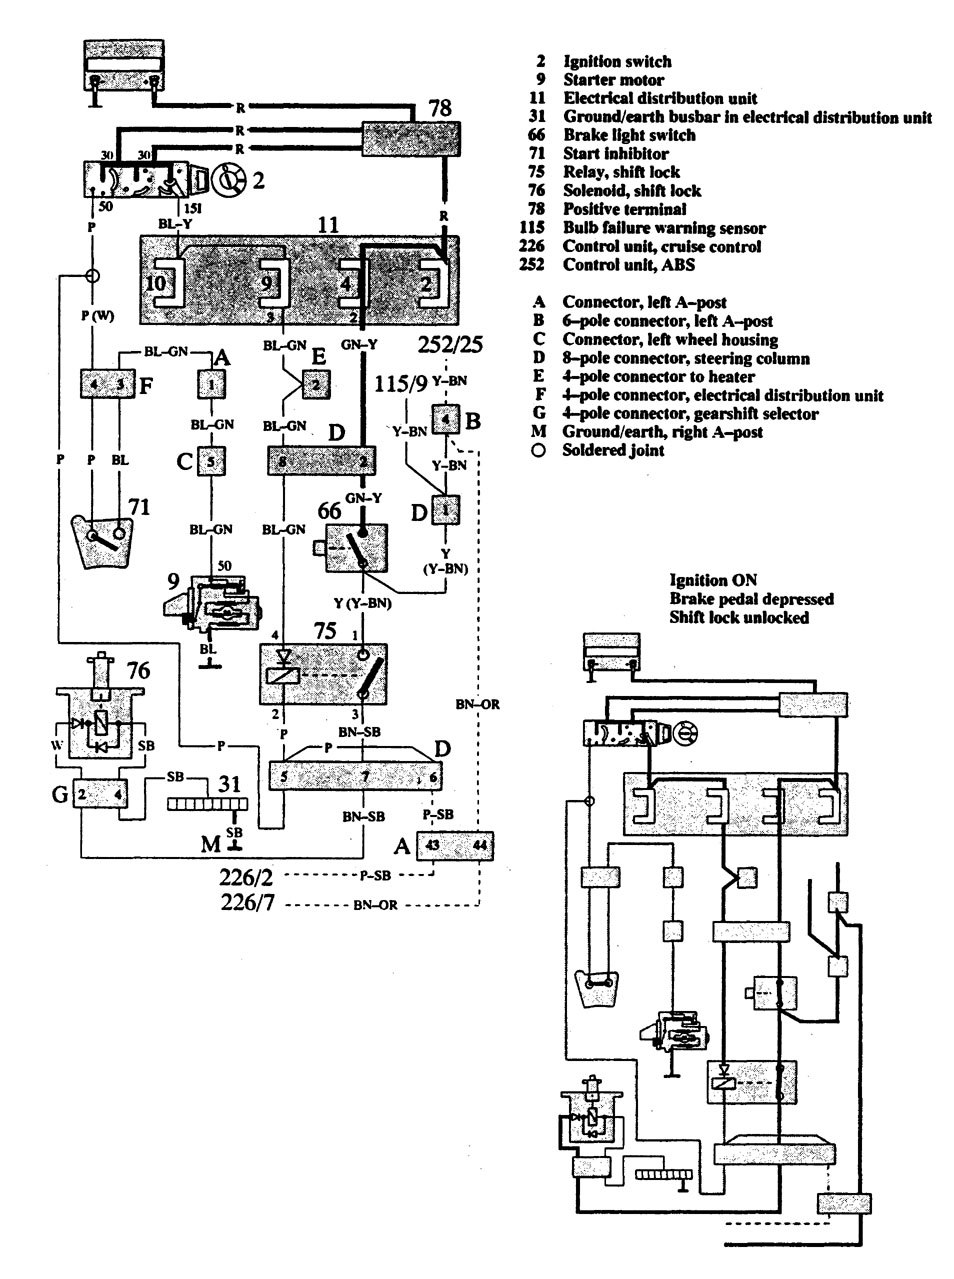 hight resolution of volvo 960 radio wiring diagram imageresizertool com 1997 volvo 960 engine diagram volvo 960 engine diagram